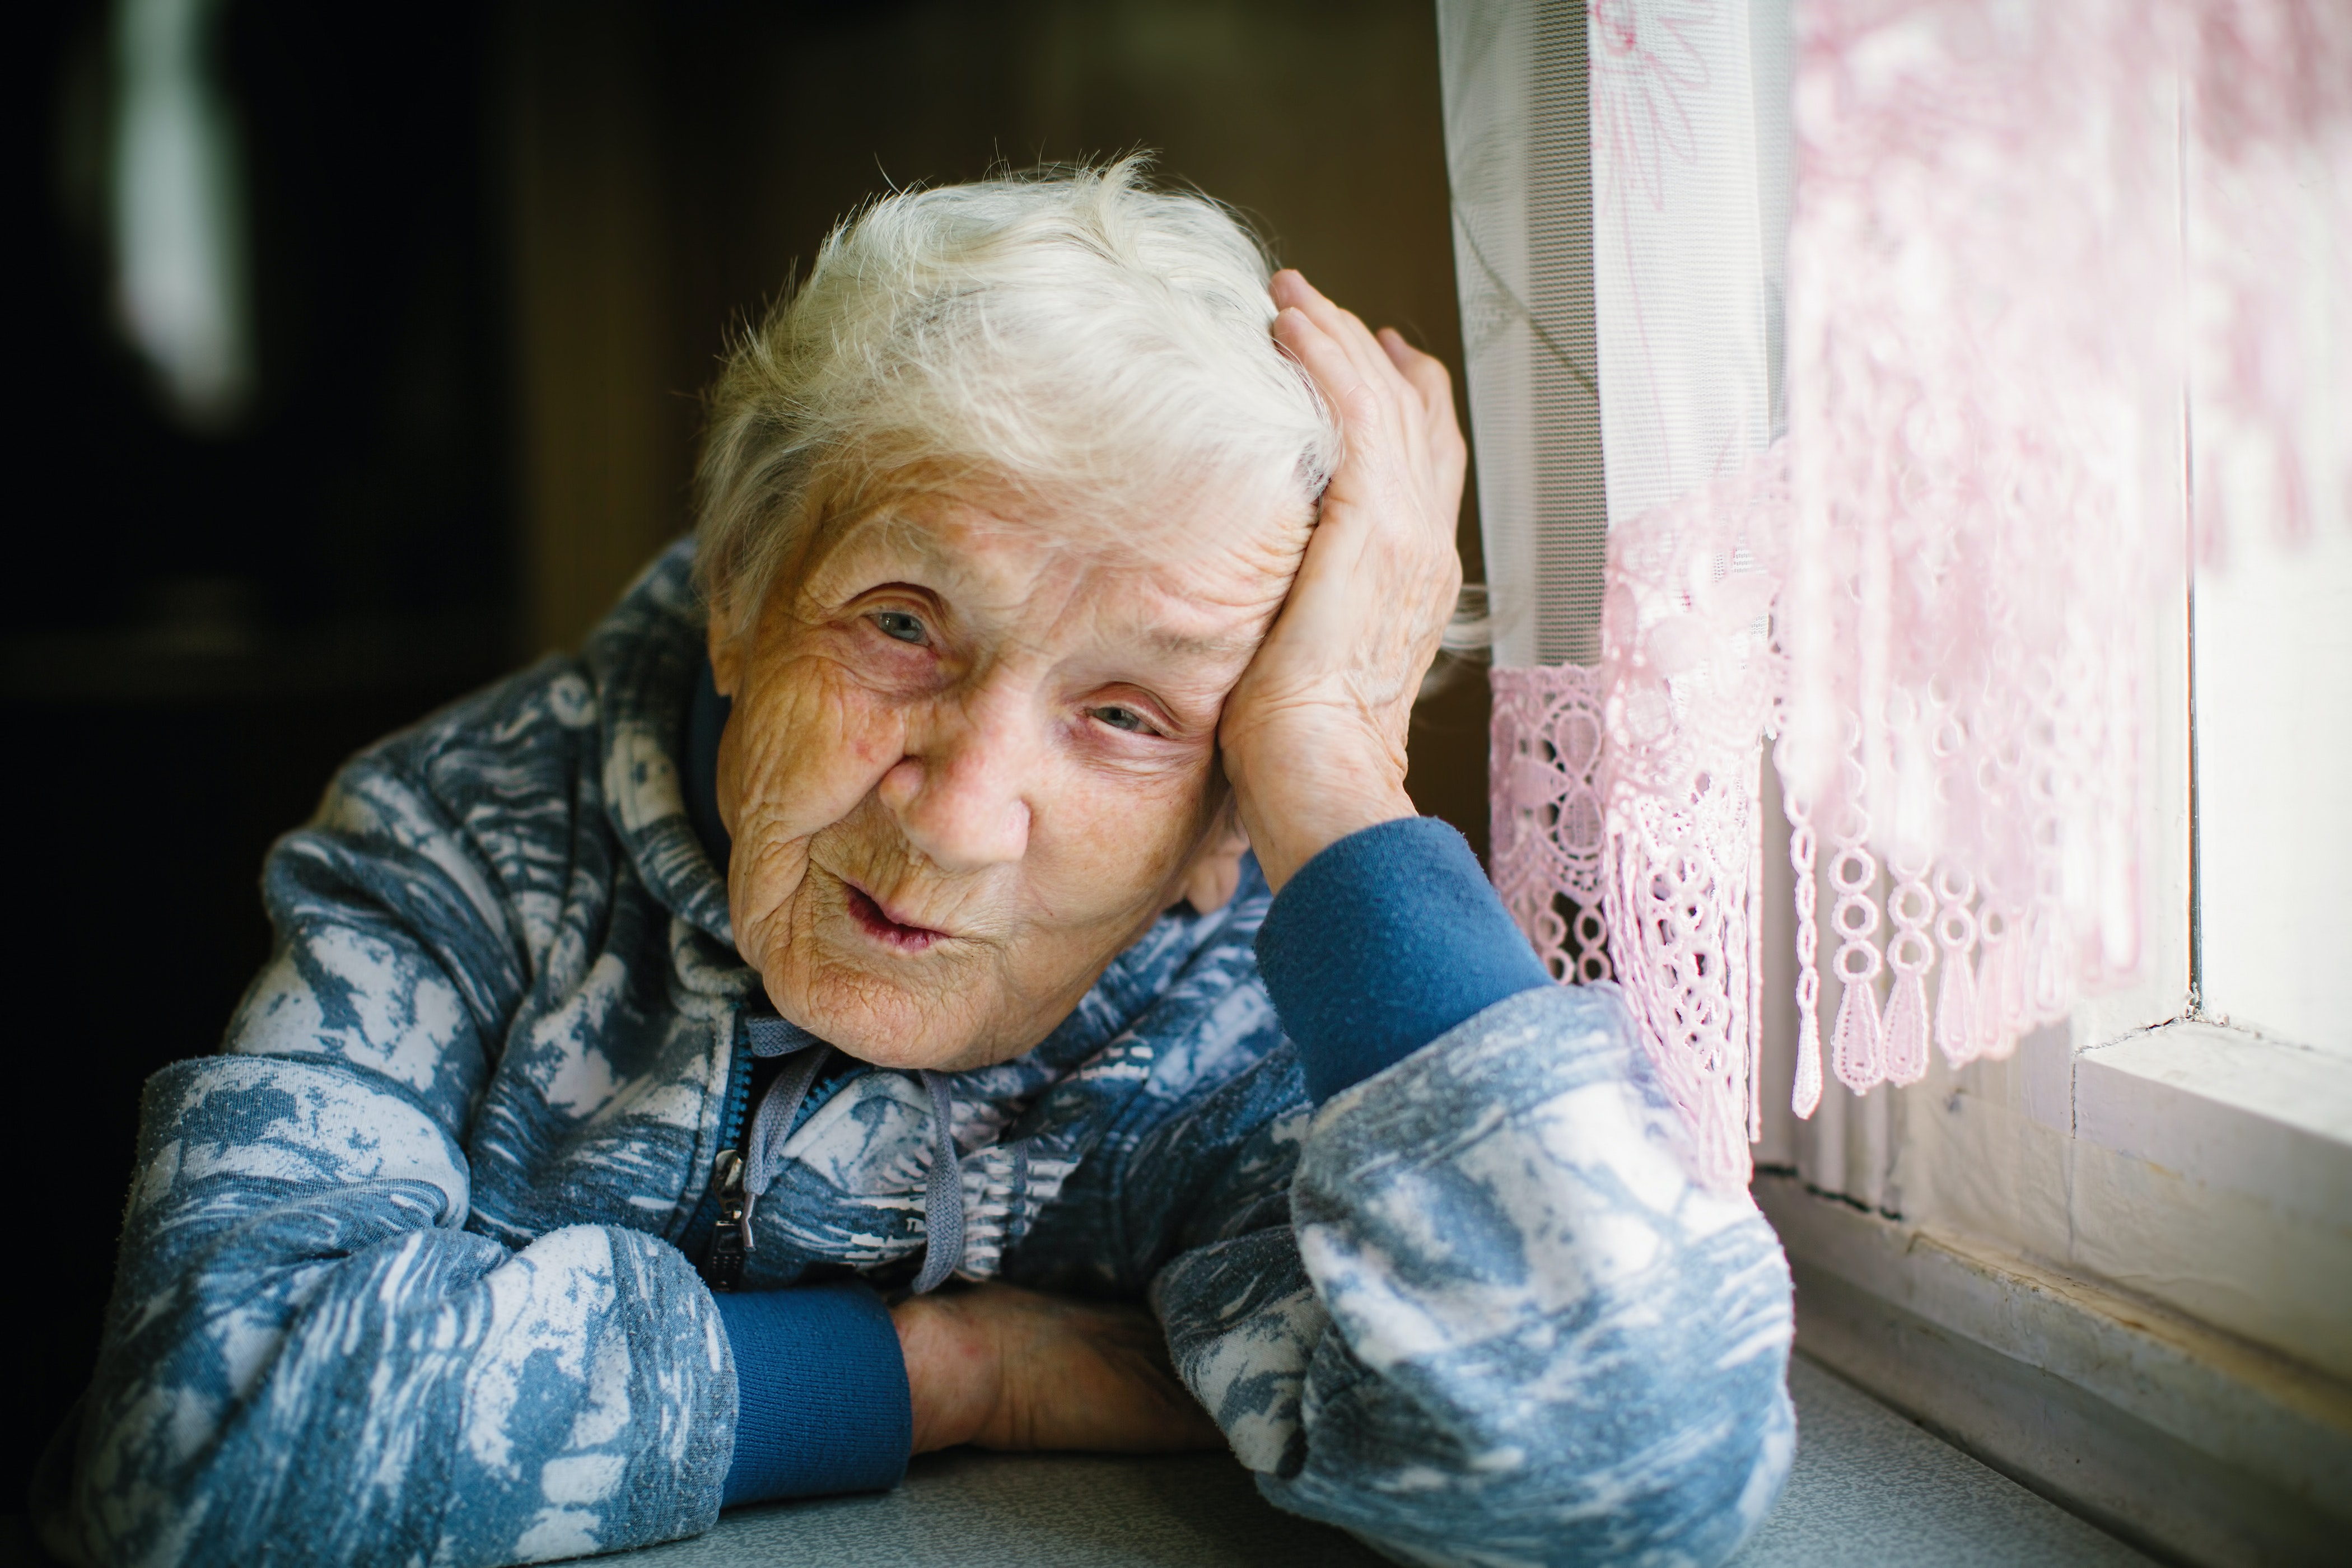 Masterfile Many People Hold Negative Views Of Older People As Lonely And Sad De Visushutterstockcom The Conversation As Life Expectancies Rise So Are Expectations For Healthy Aging